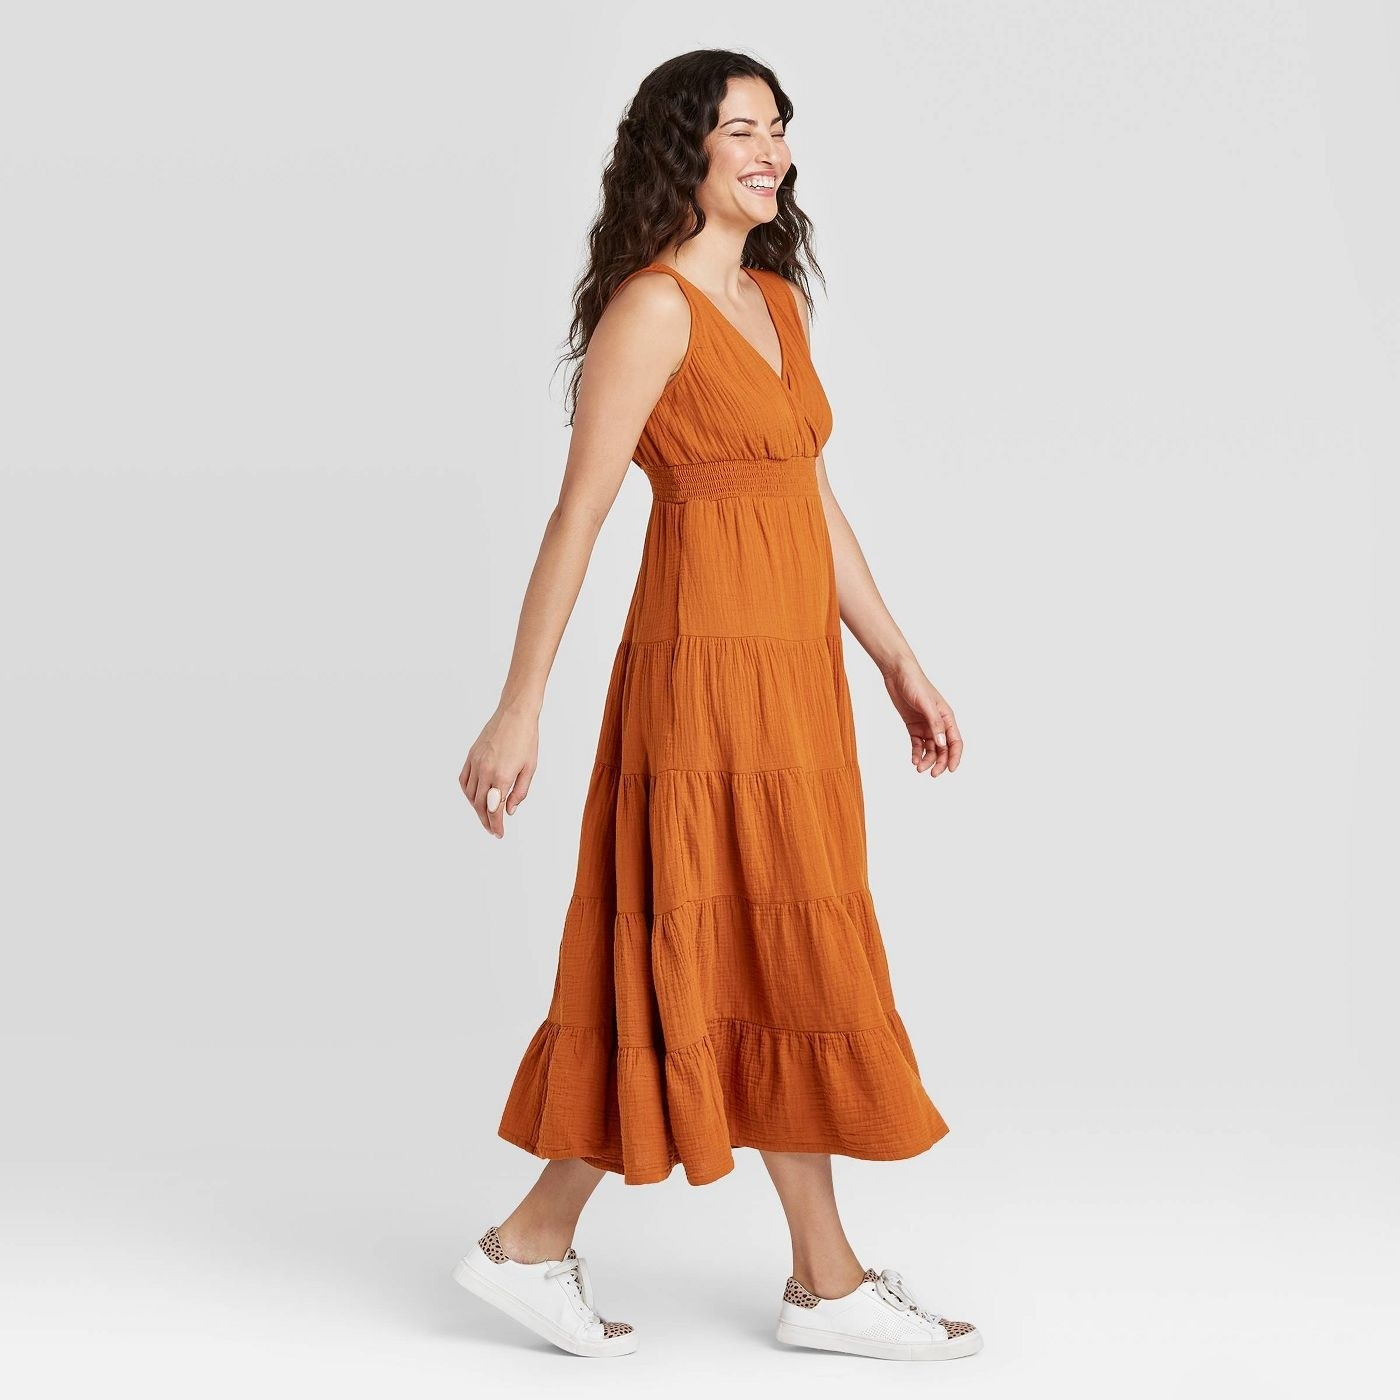 A model in an orange sleeveless V-neck maxi dress